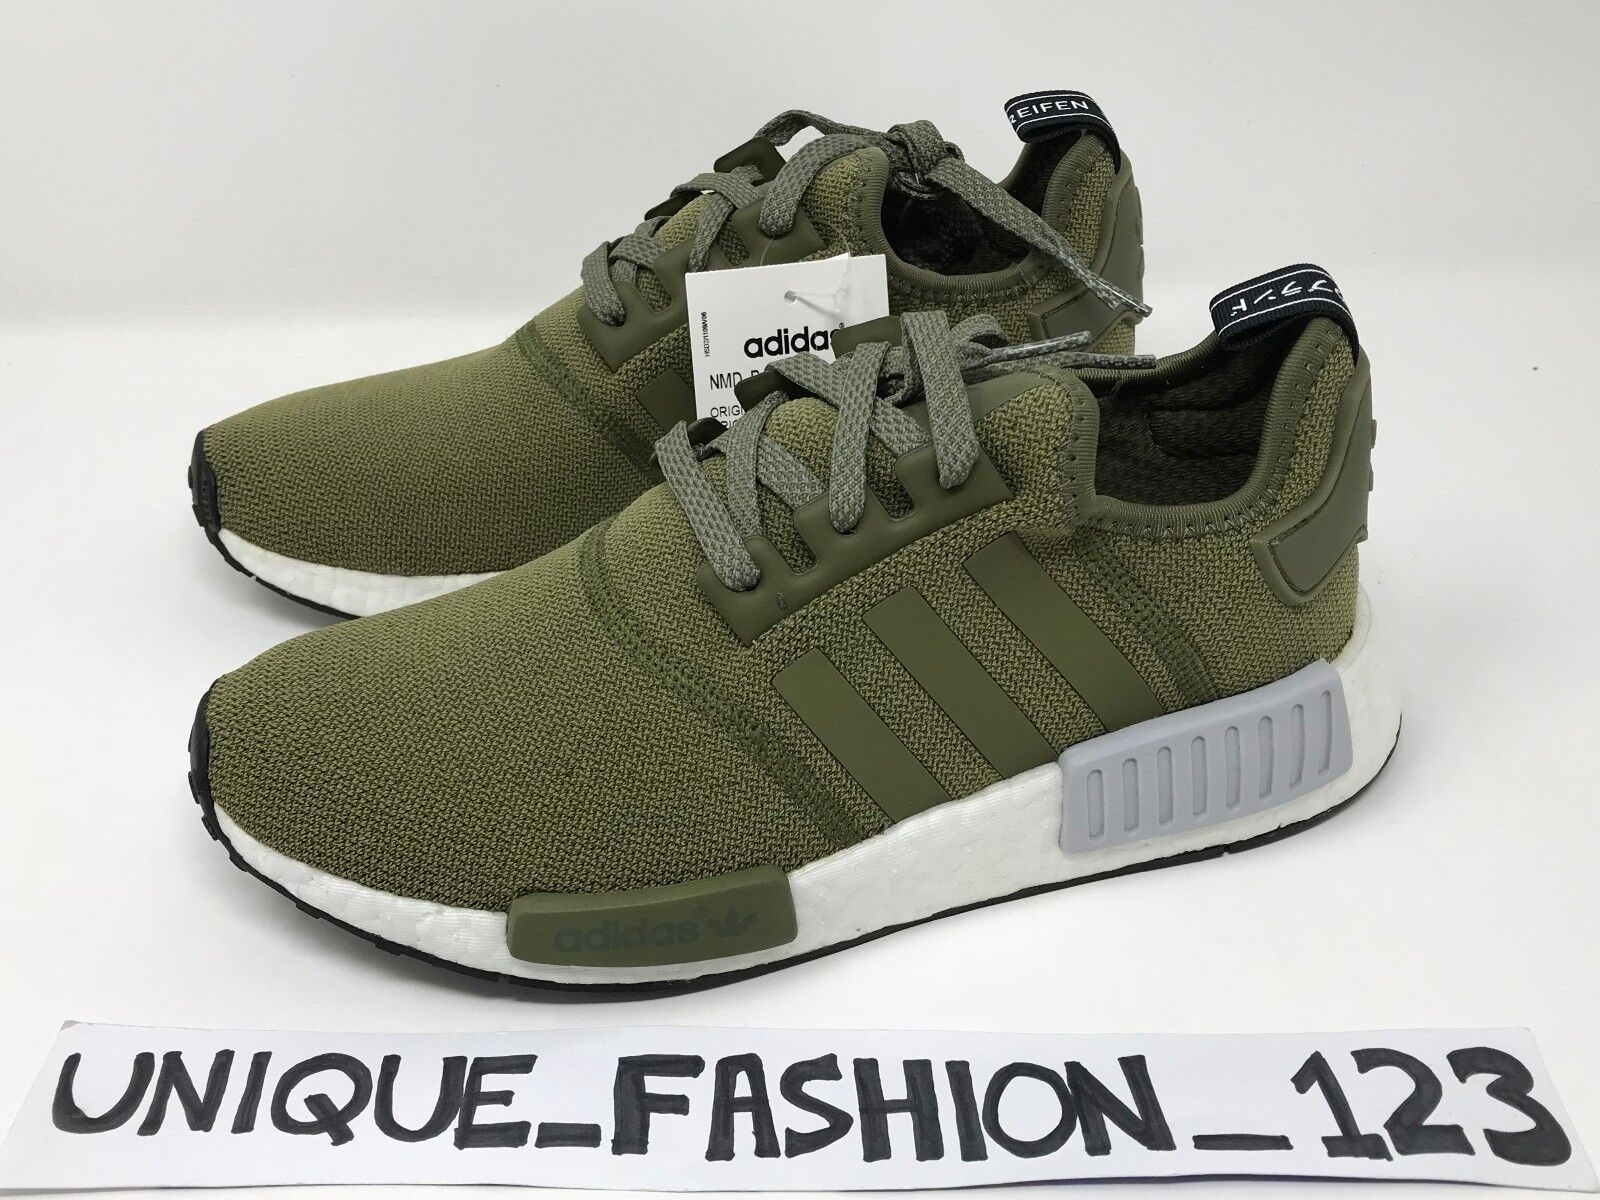 ADIDAS NMD R1 OLIVE CARGO US 8 FOOTLOCKER EU EXCLUSIVE BB2790